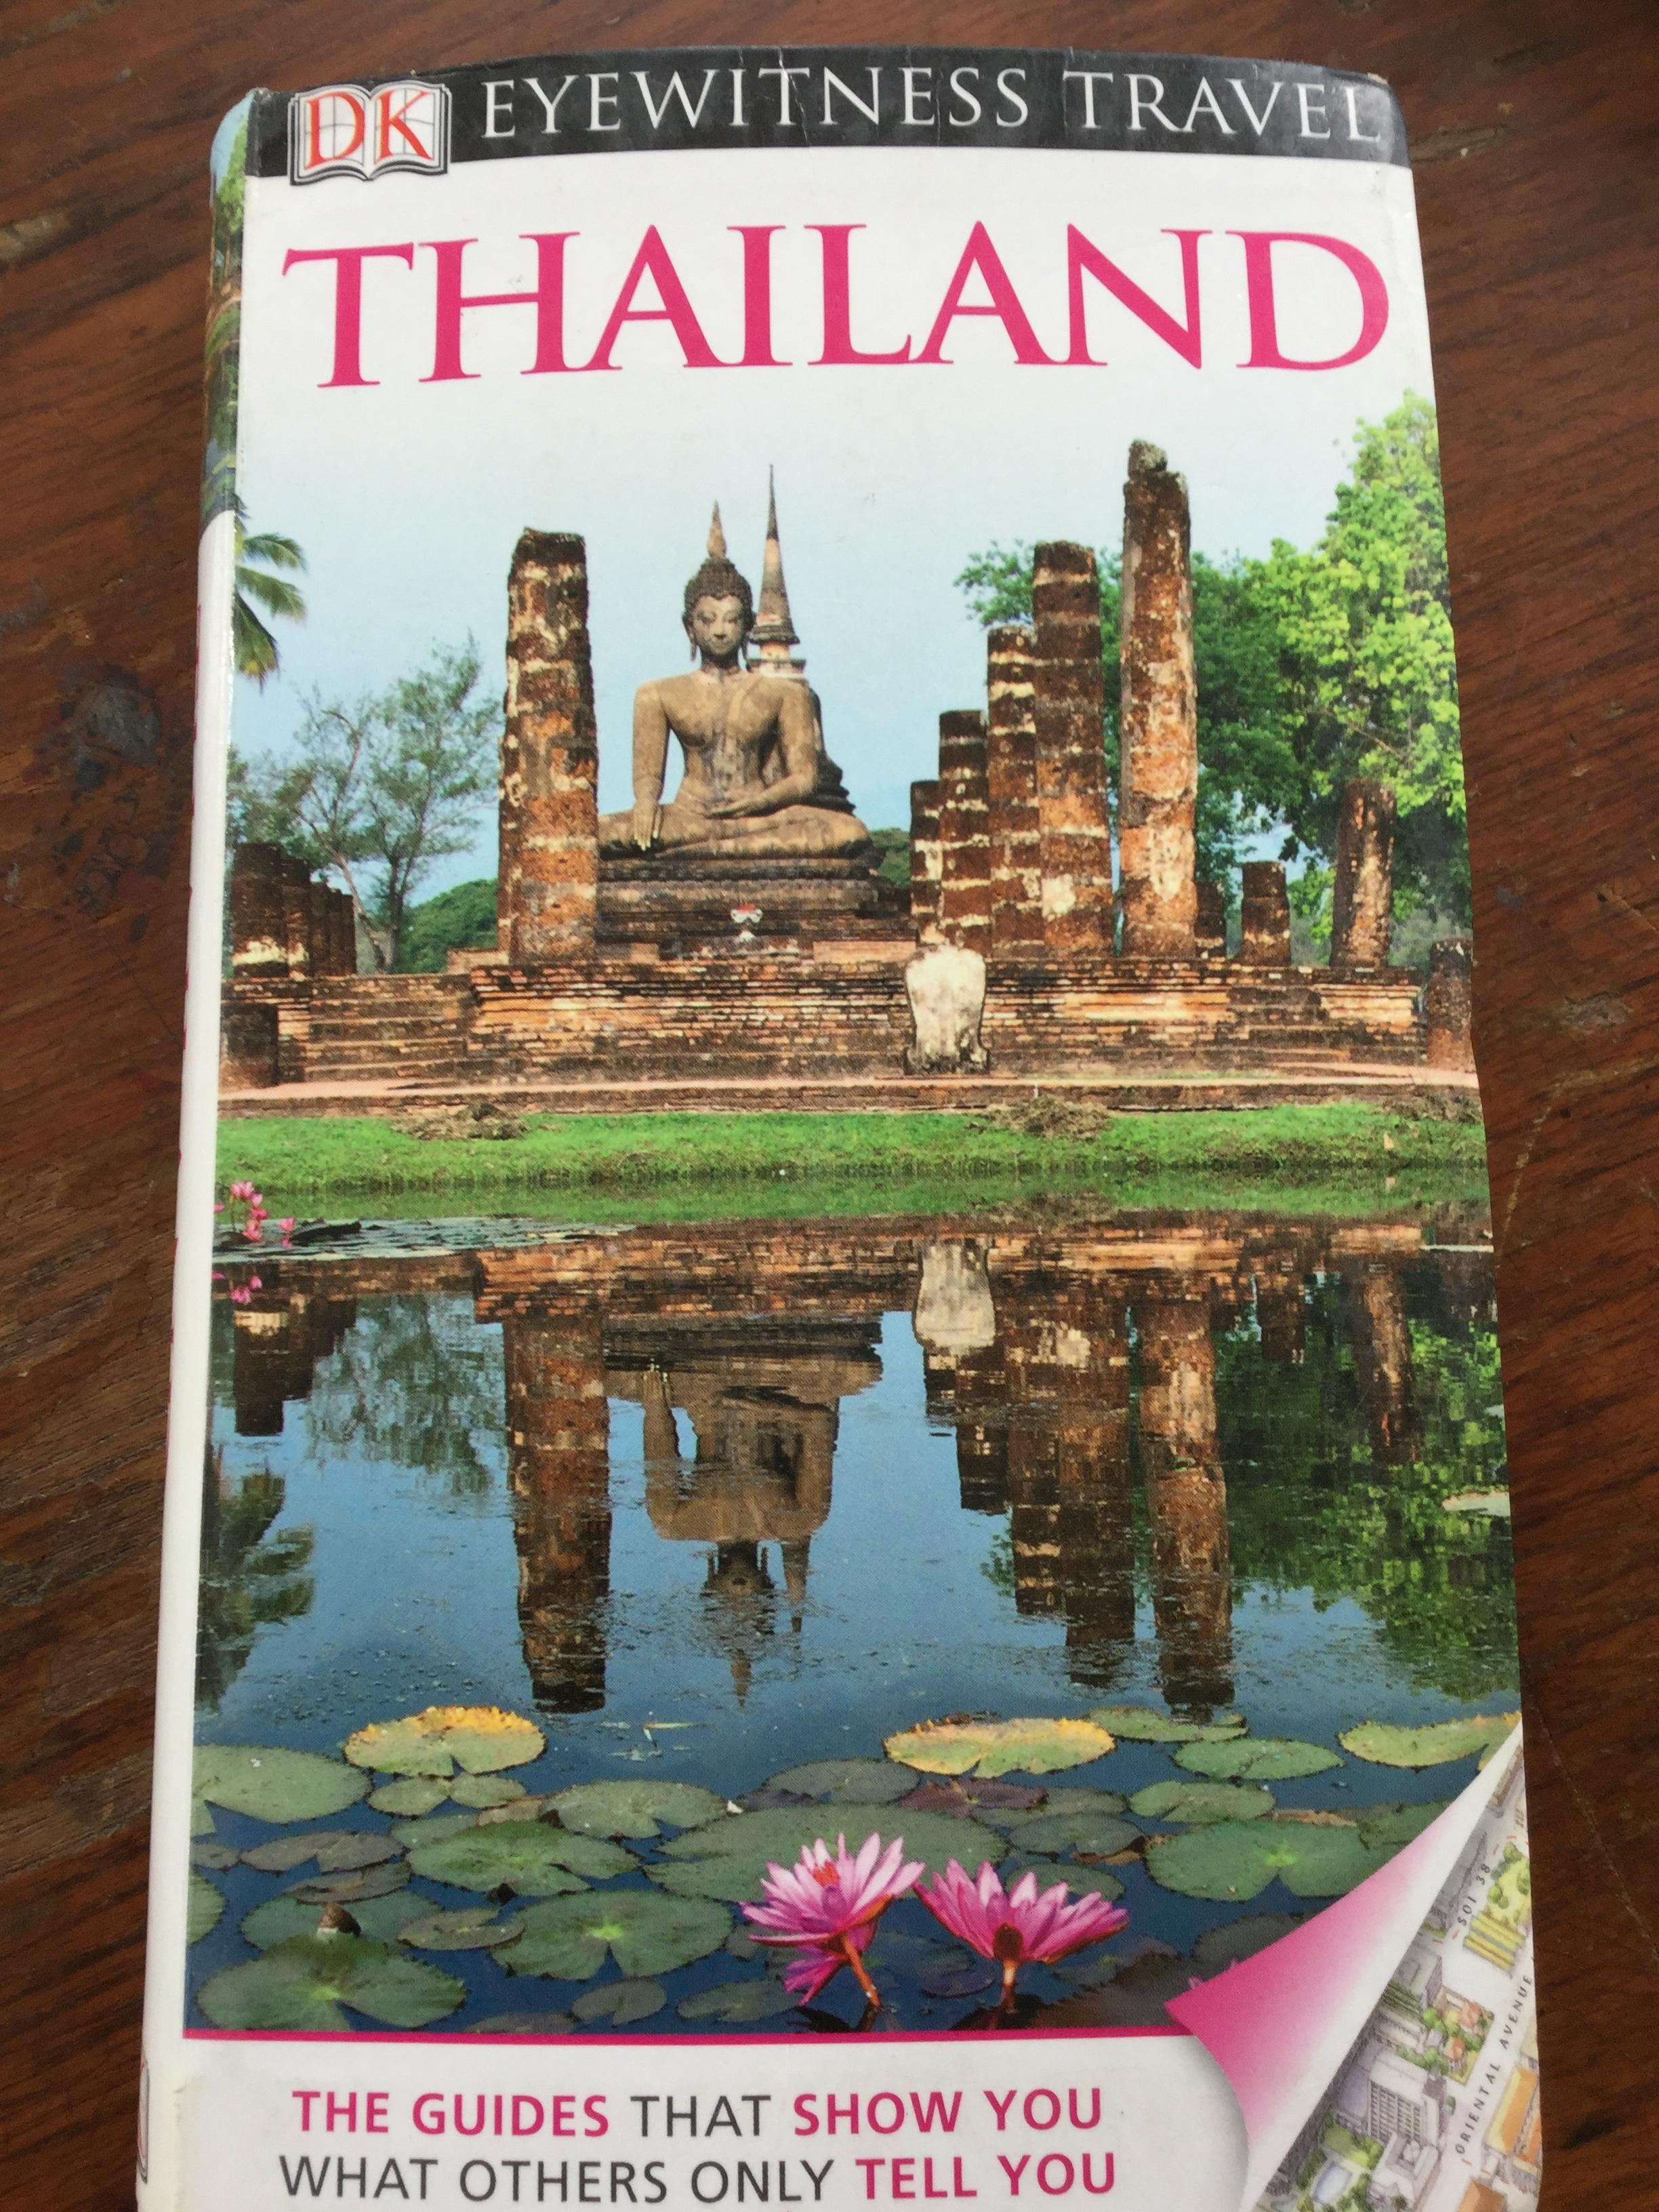 THAILAND EYEWITNESS TRAVEL. The guide that show you what others only tell you